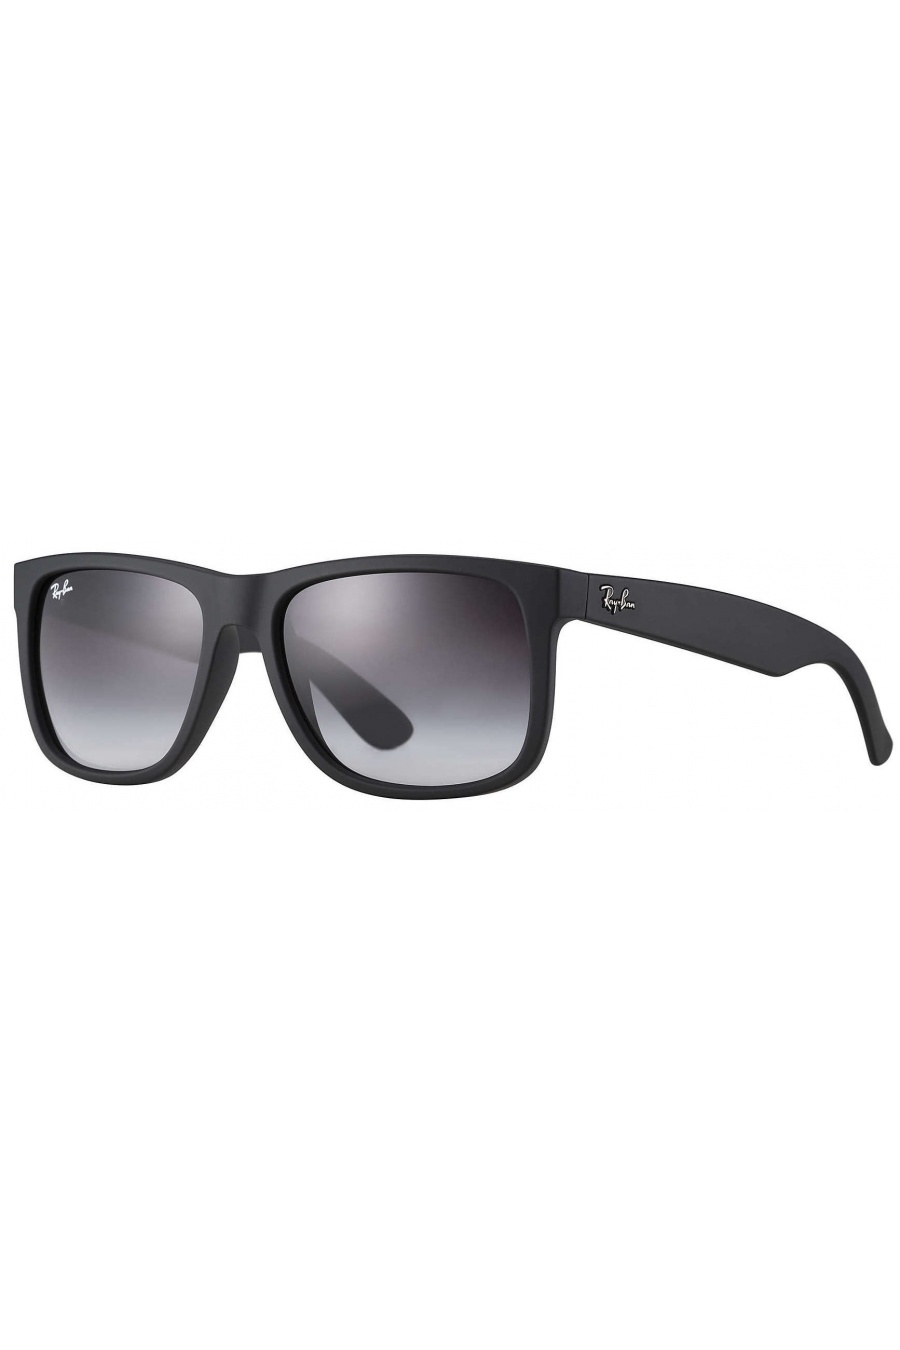 RAY BAN RB4165 - 622/T3 54 JUSTIN